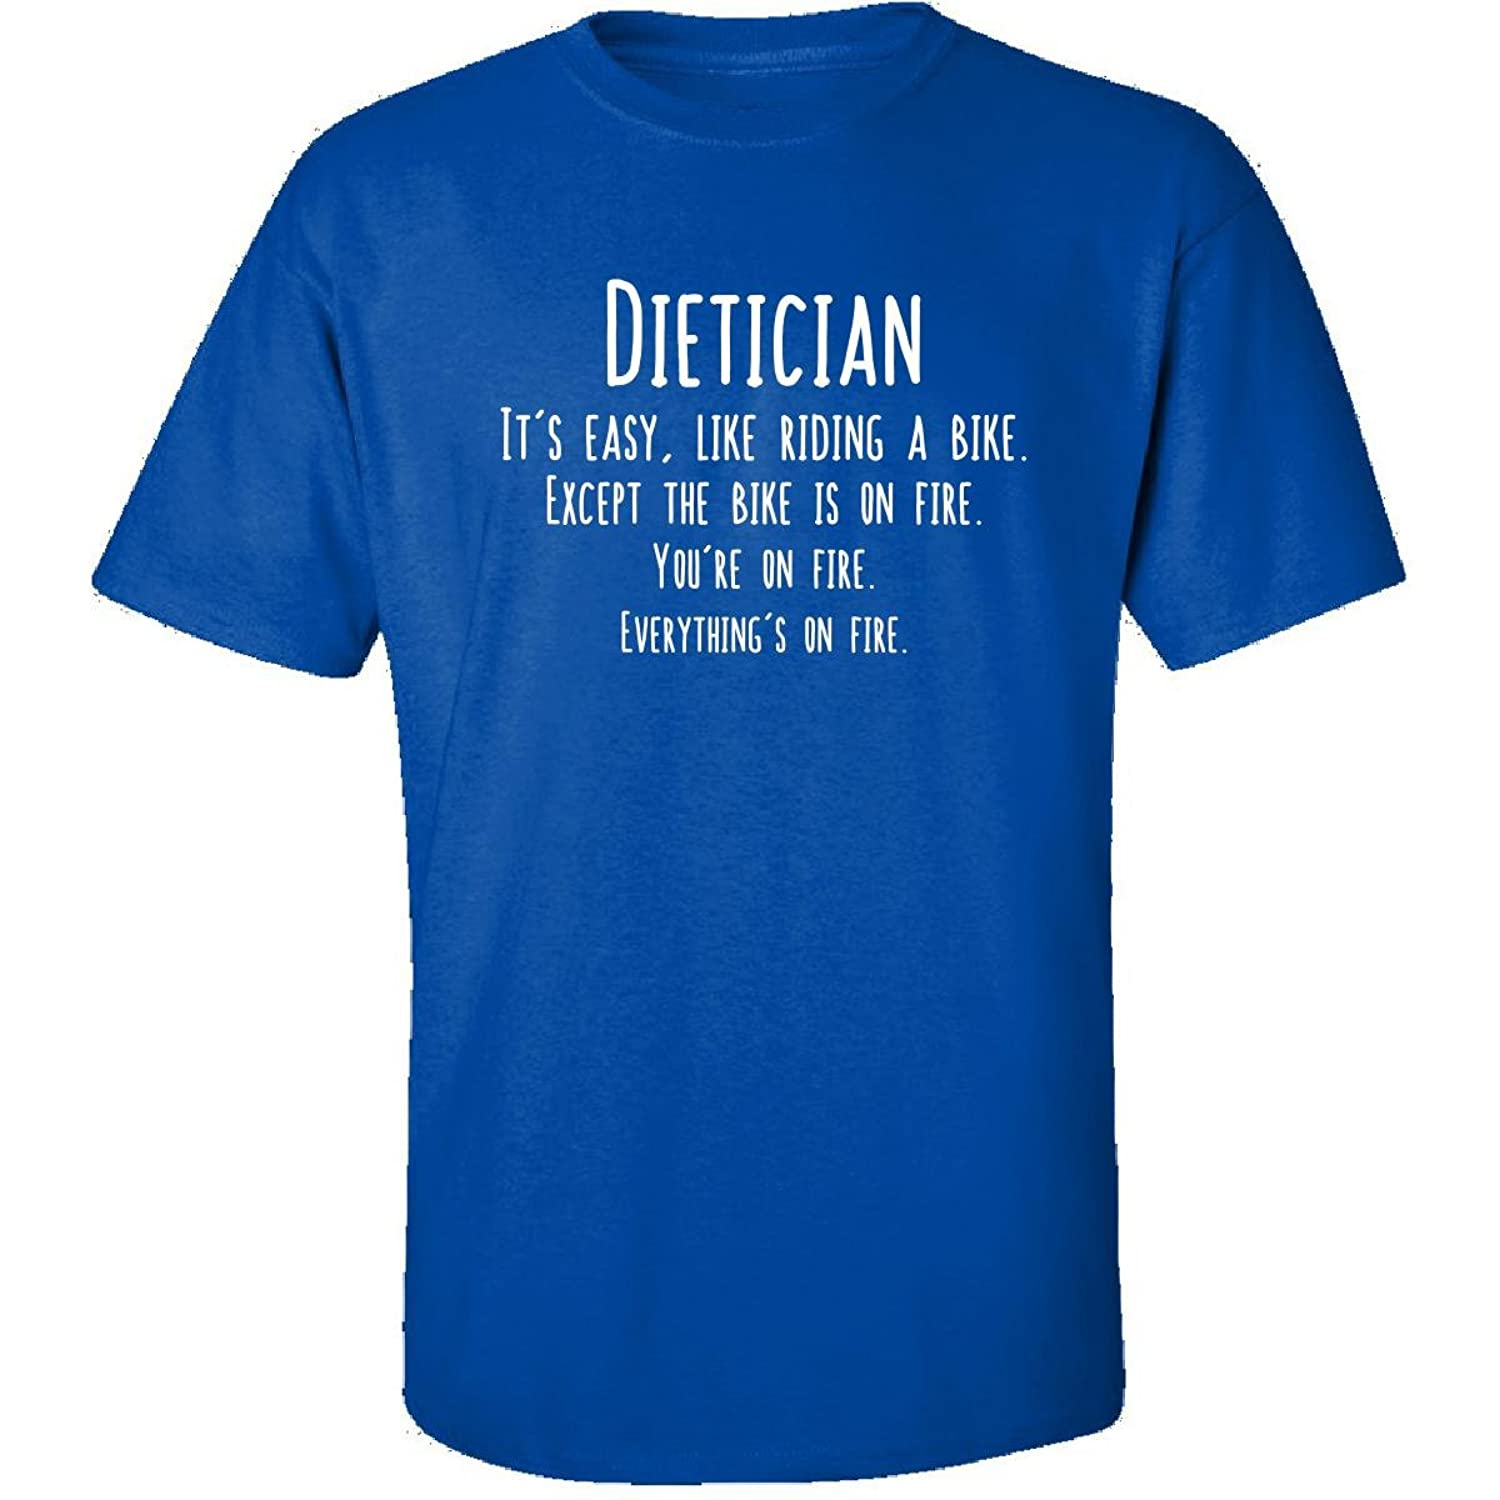 Dietician Is Easy Like Riding Bike On Fire Funny Job - Adult Shirt